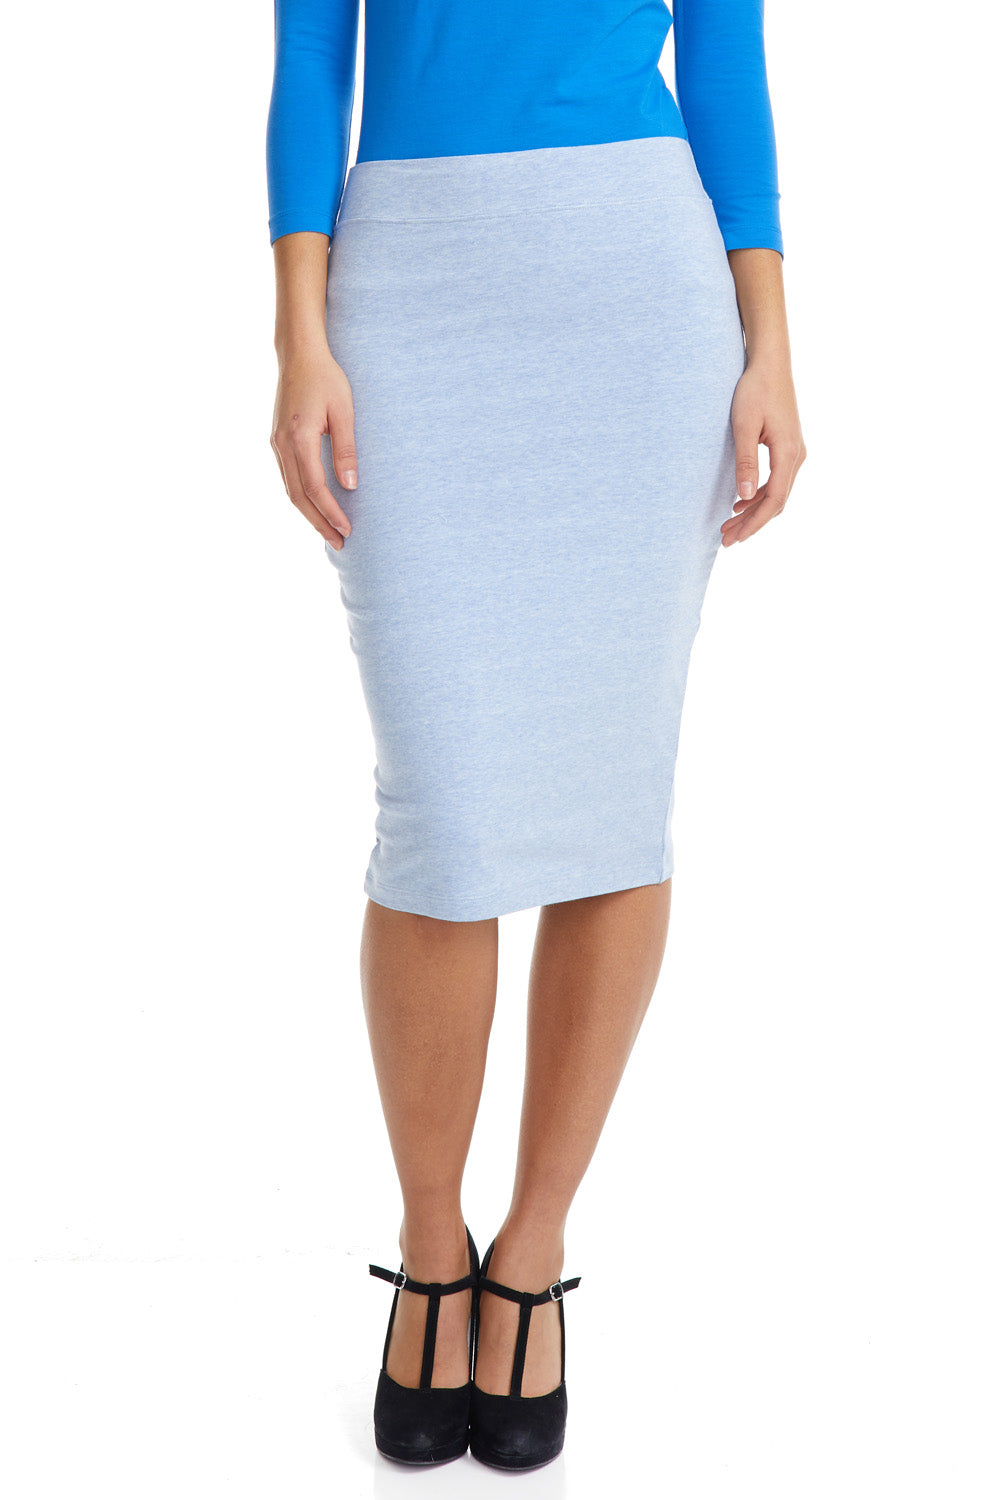 Esteez CHICAGO Skirt - Cotton Spandex Stretchy Pencil skirt for WOMEN - BABY BLUE